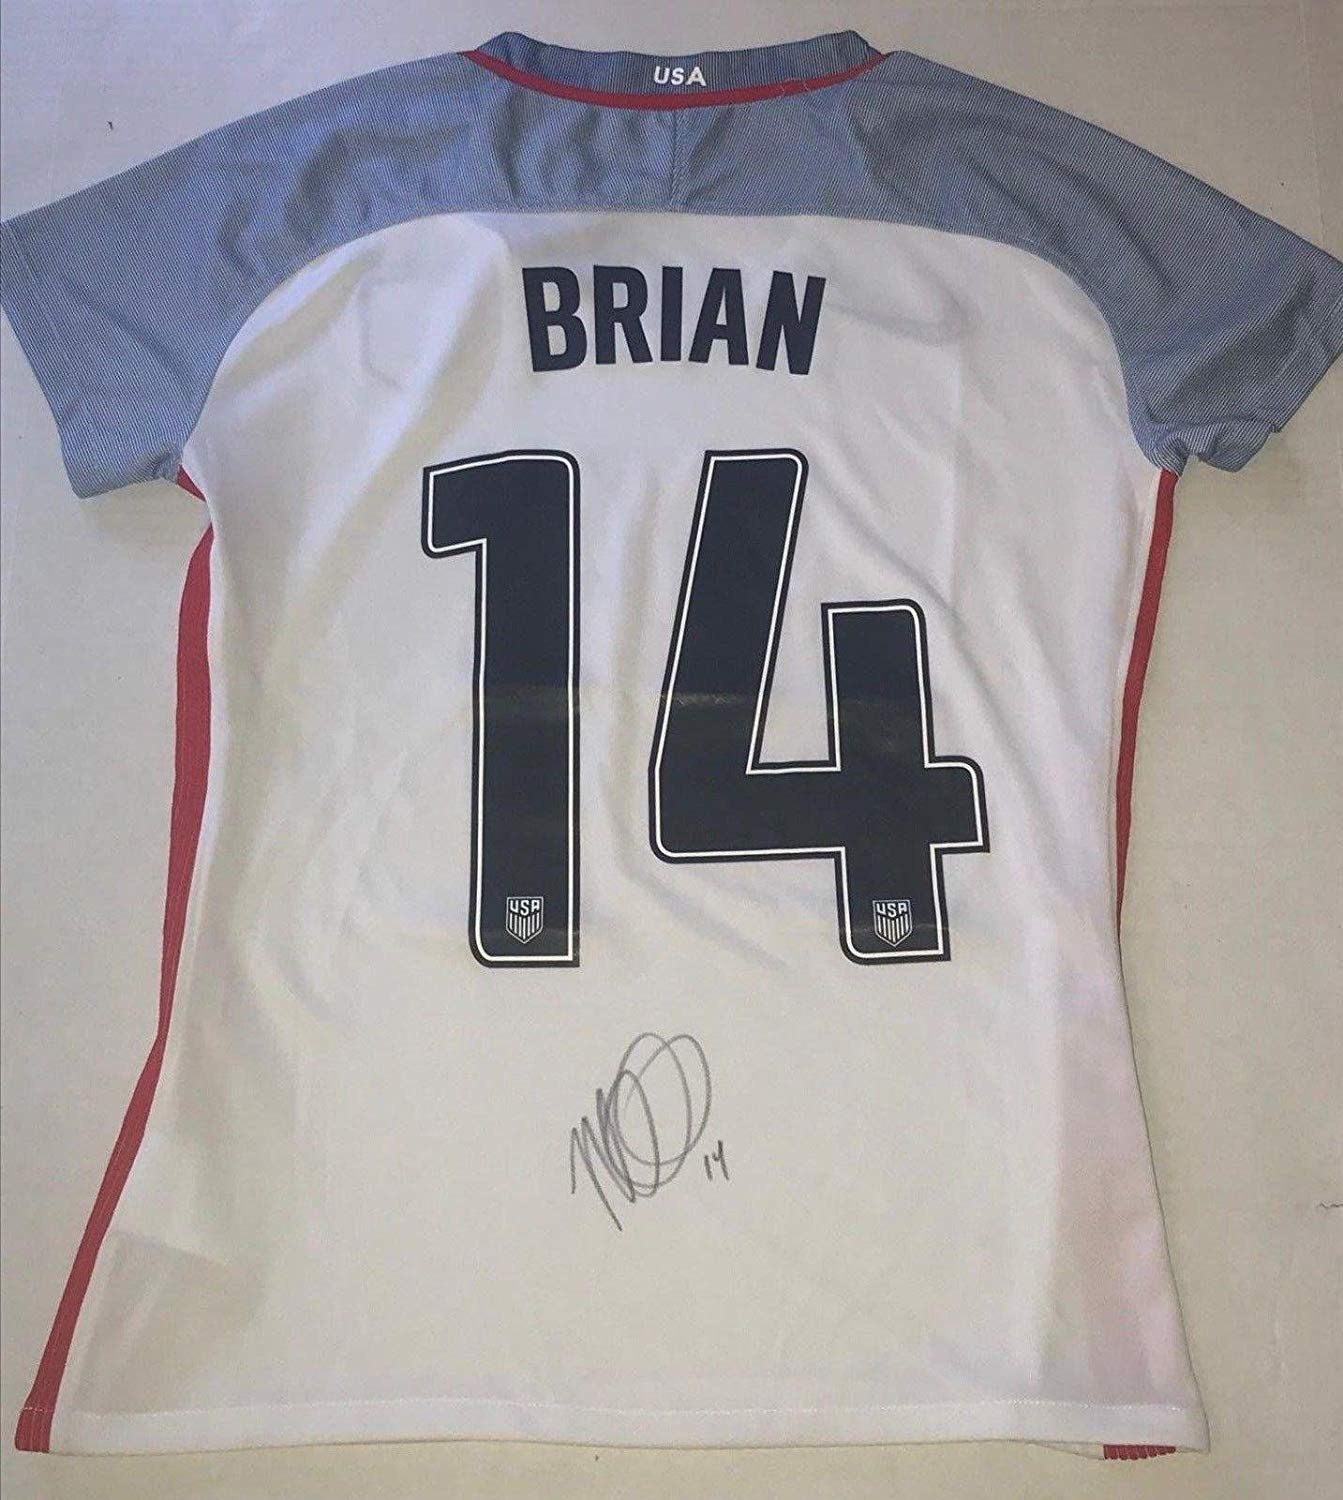 a964cfe2a53 Get Quotations · Morgan Brian USWNT signed Team USA jersey autographed USA  Womens Soccer - Autographed Soccer Jerseys